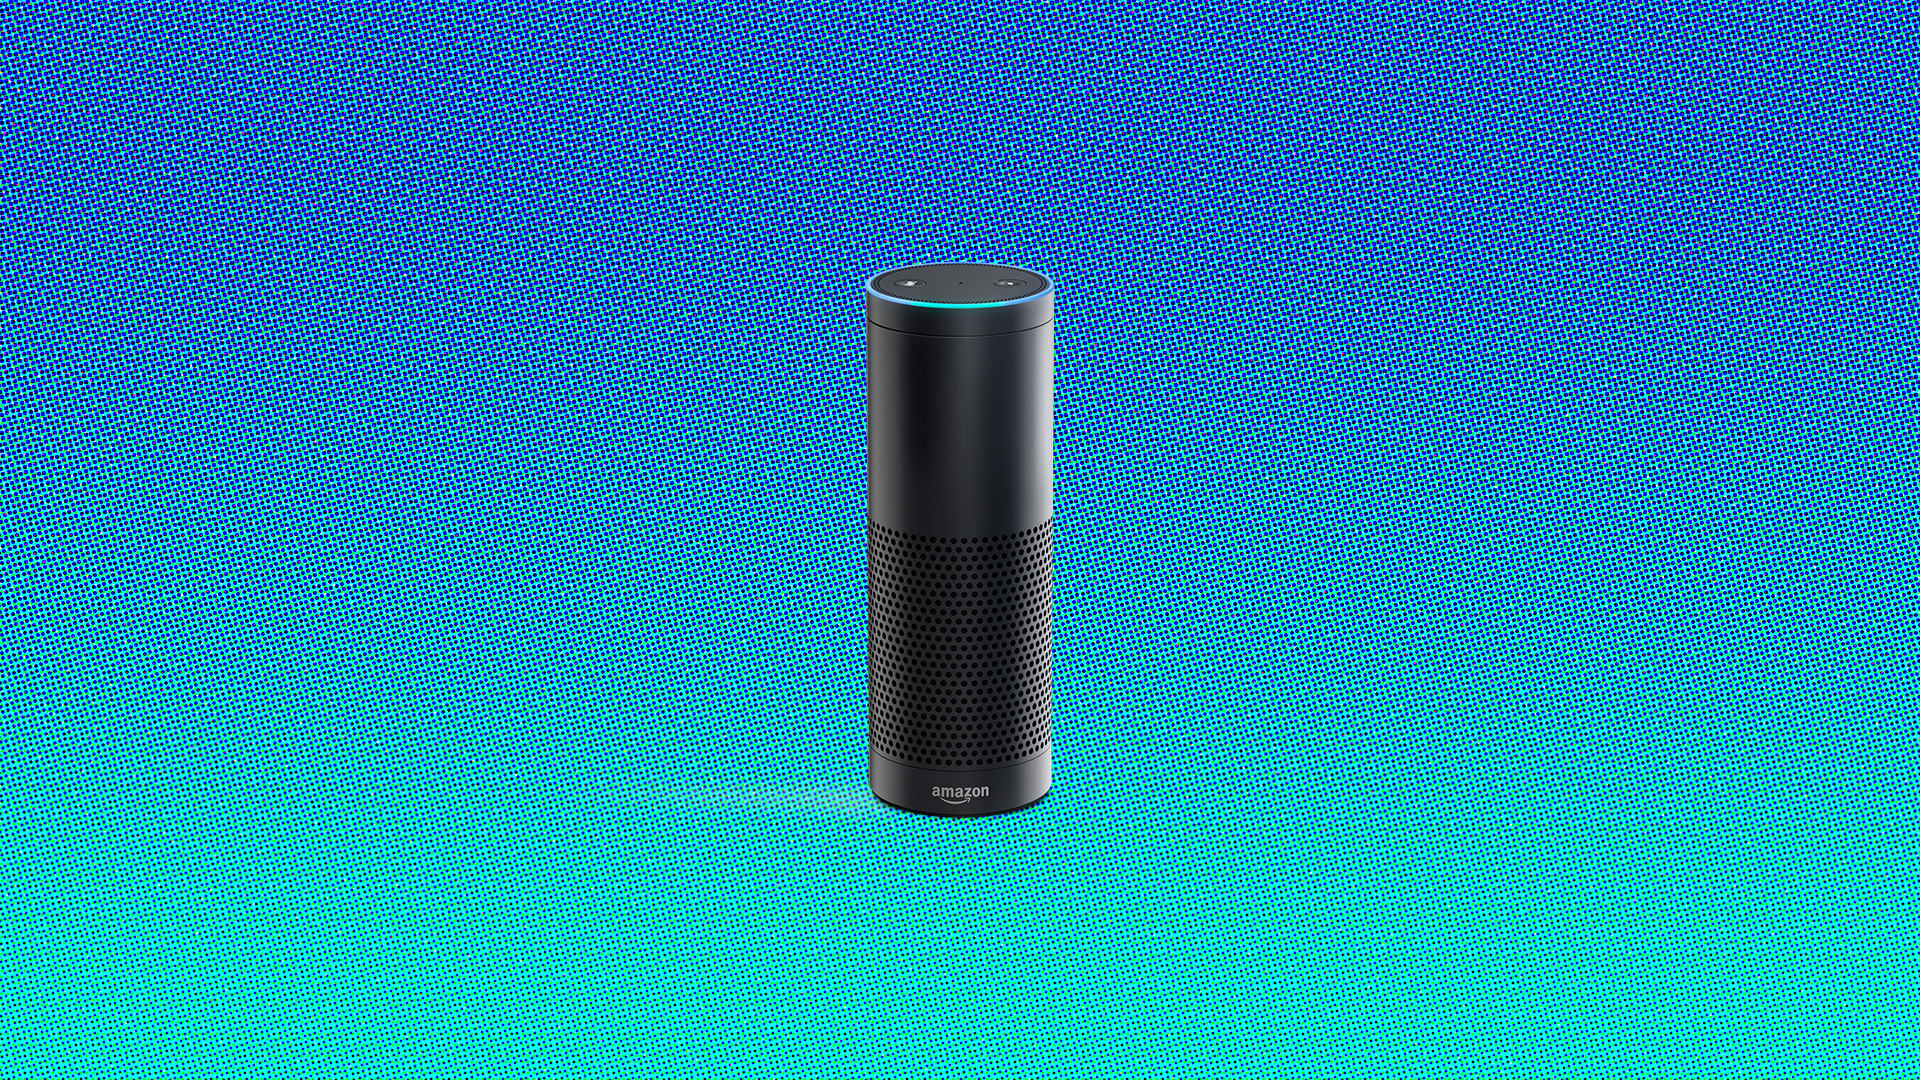 Amazon Echo now lets you control Spotify, Pandora and iTunes using your voice